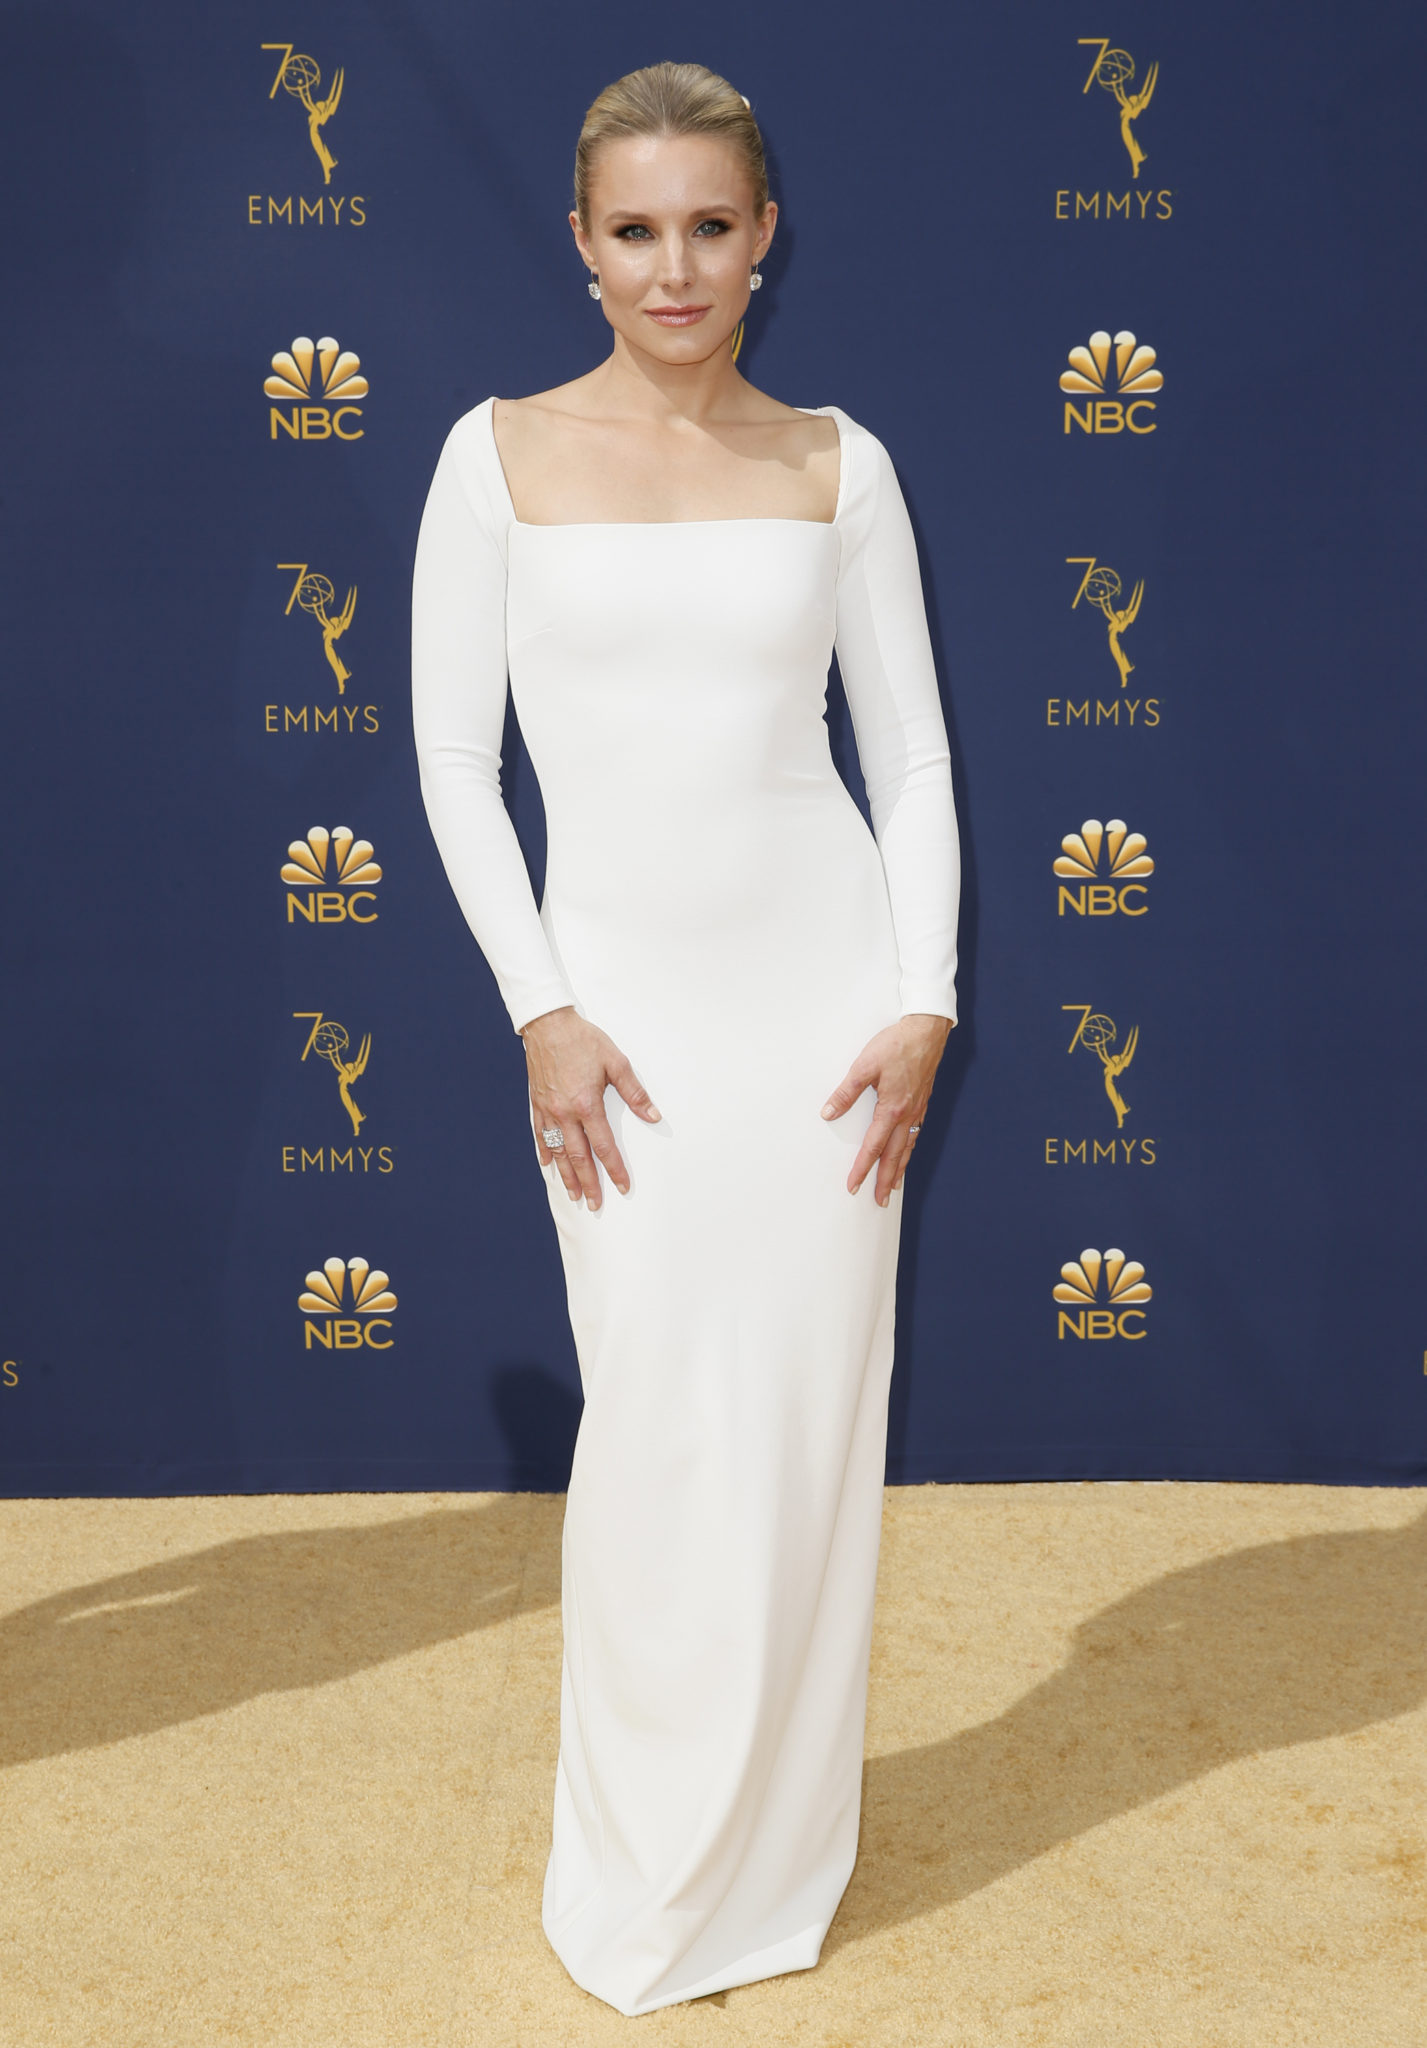 Kristen Bell Emmys 4Chion Lifestyle